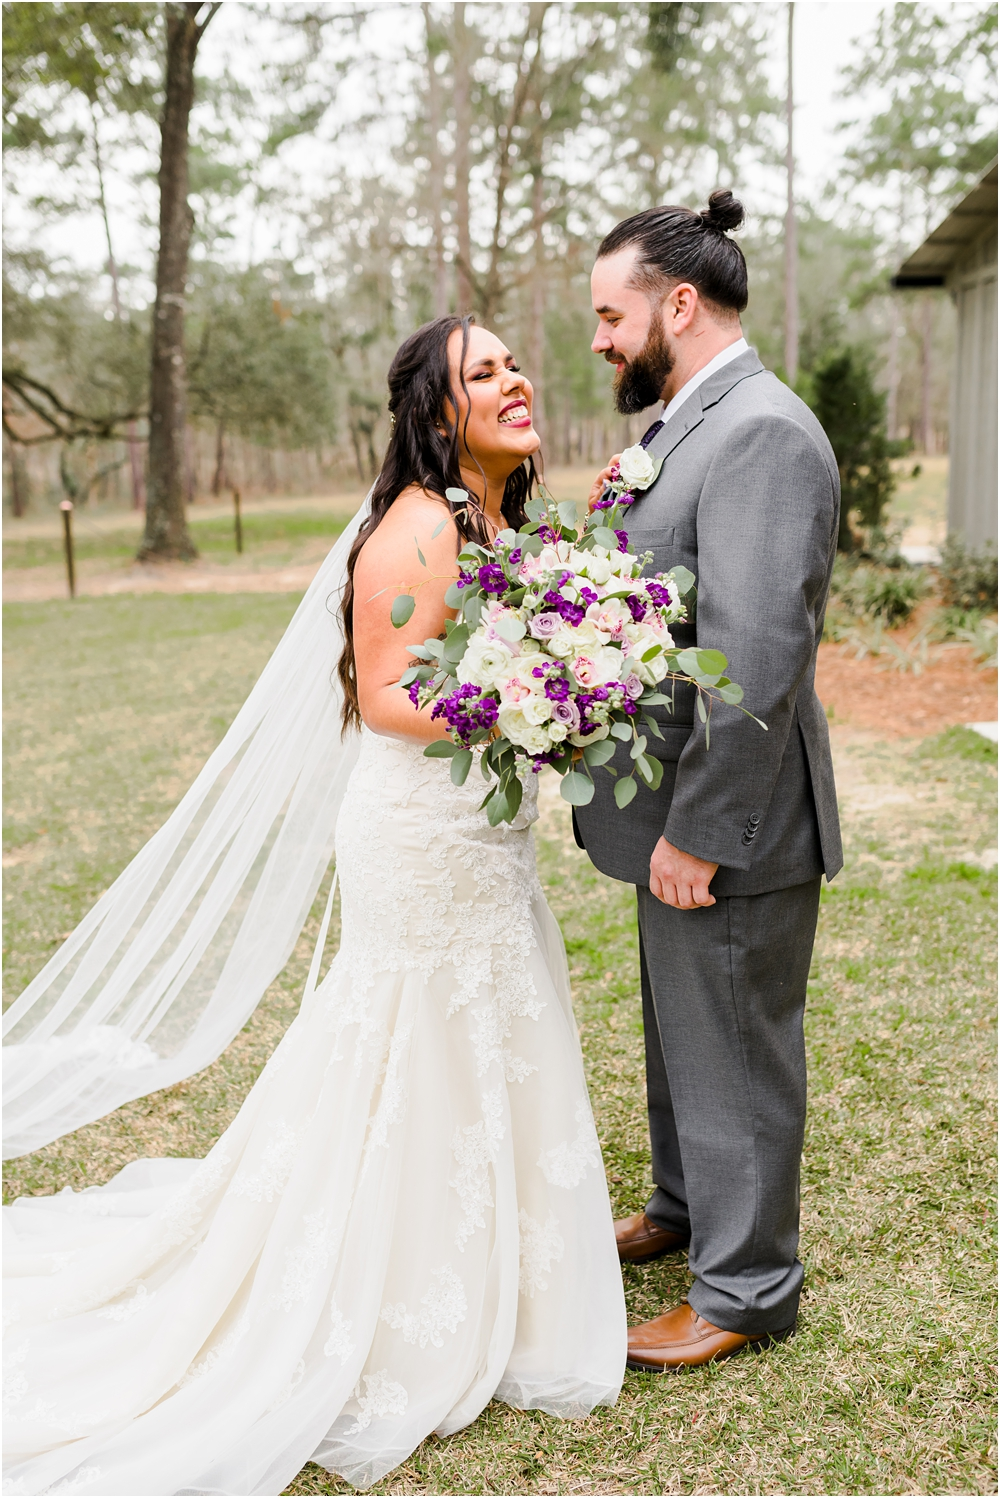 loblolly-rise-tallahassee-wedding-kiersten-stevenson-photography-53.jpg